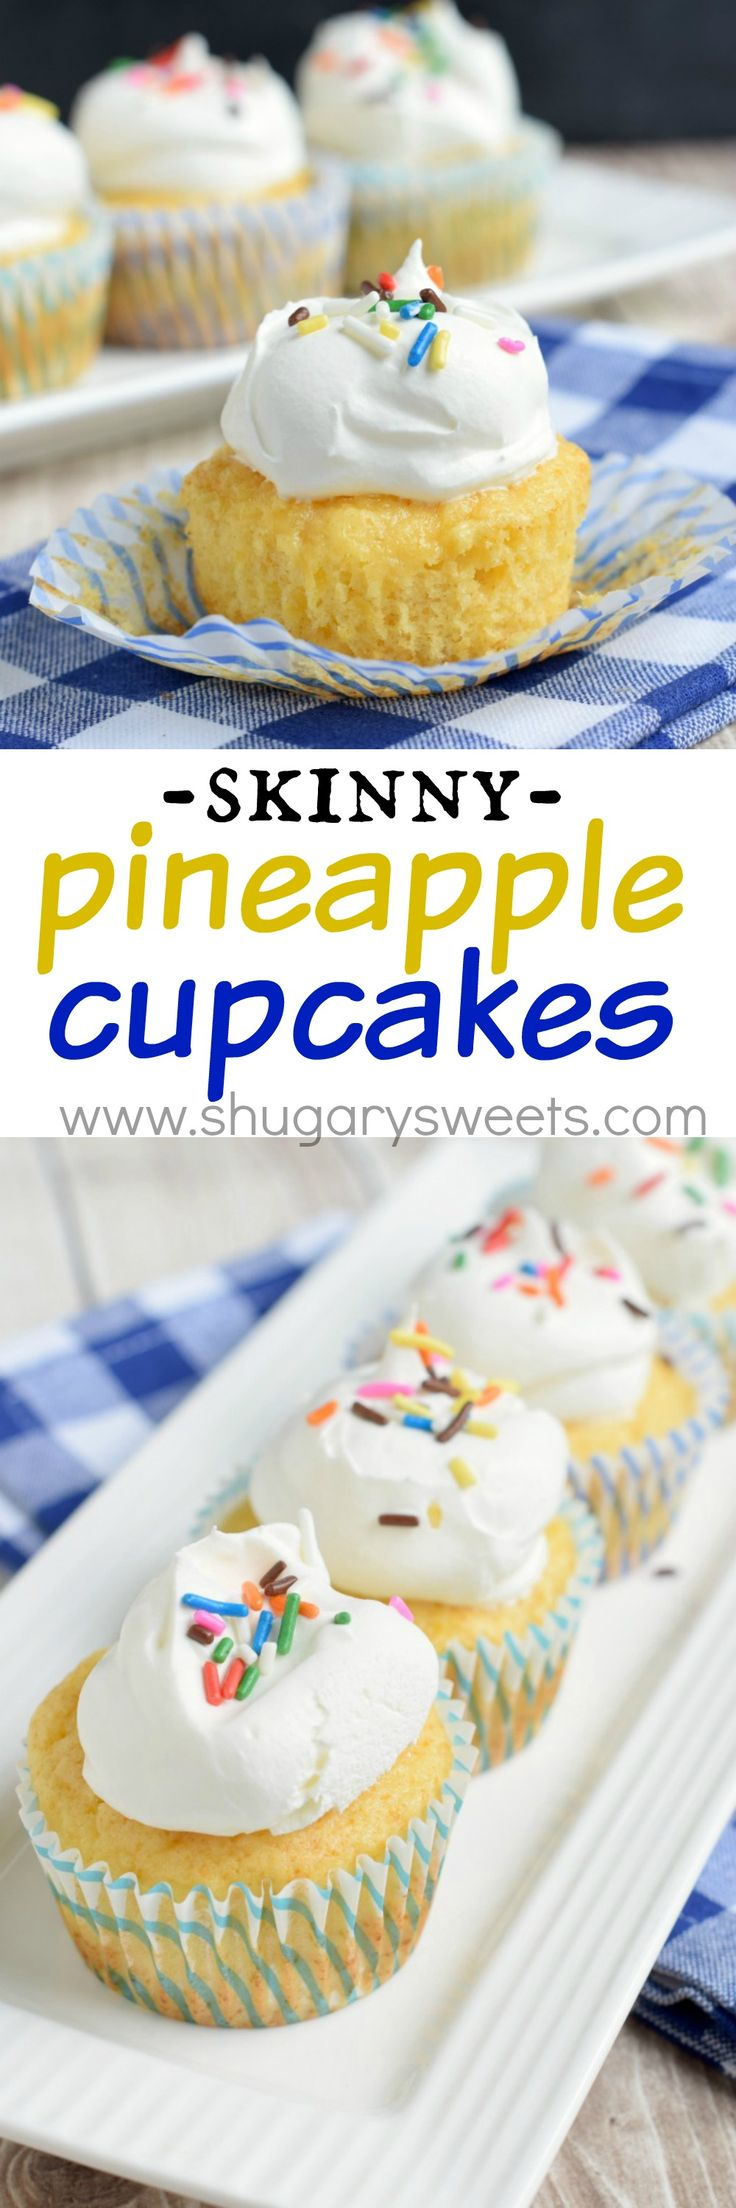 These 3 ingredient, Skinny Pineapple Cupcakes are the easiest, most ...